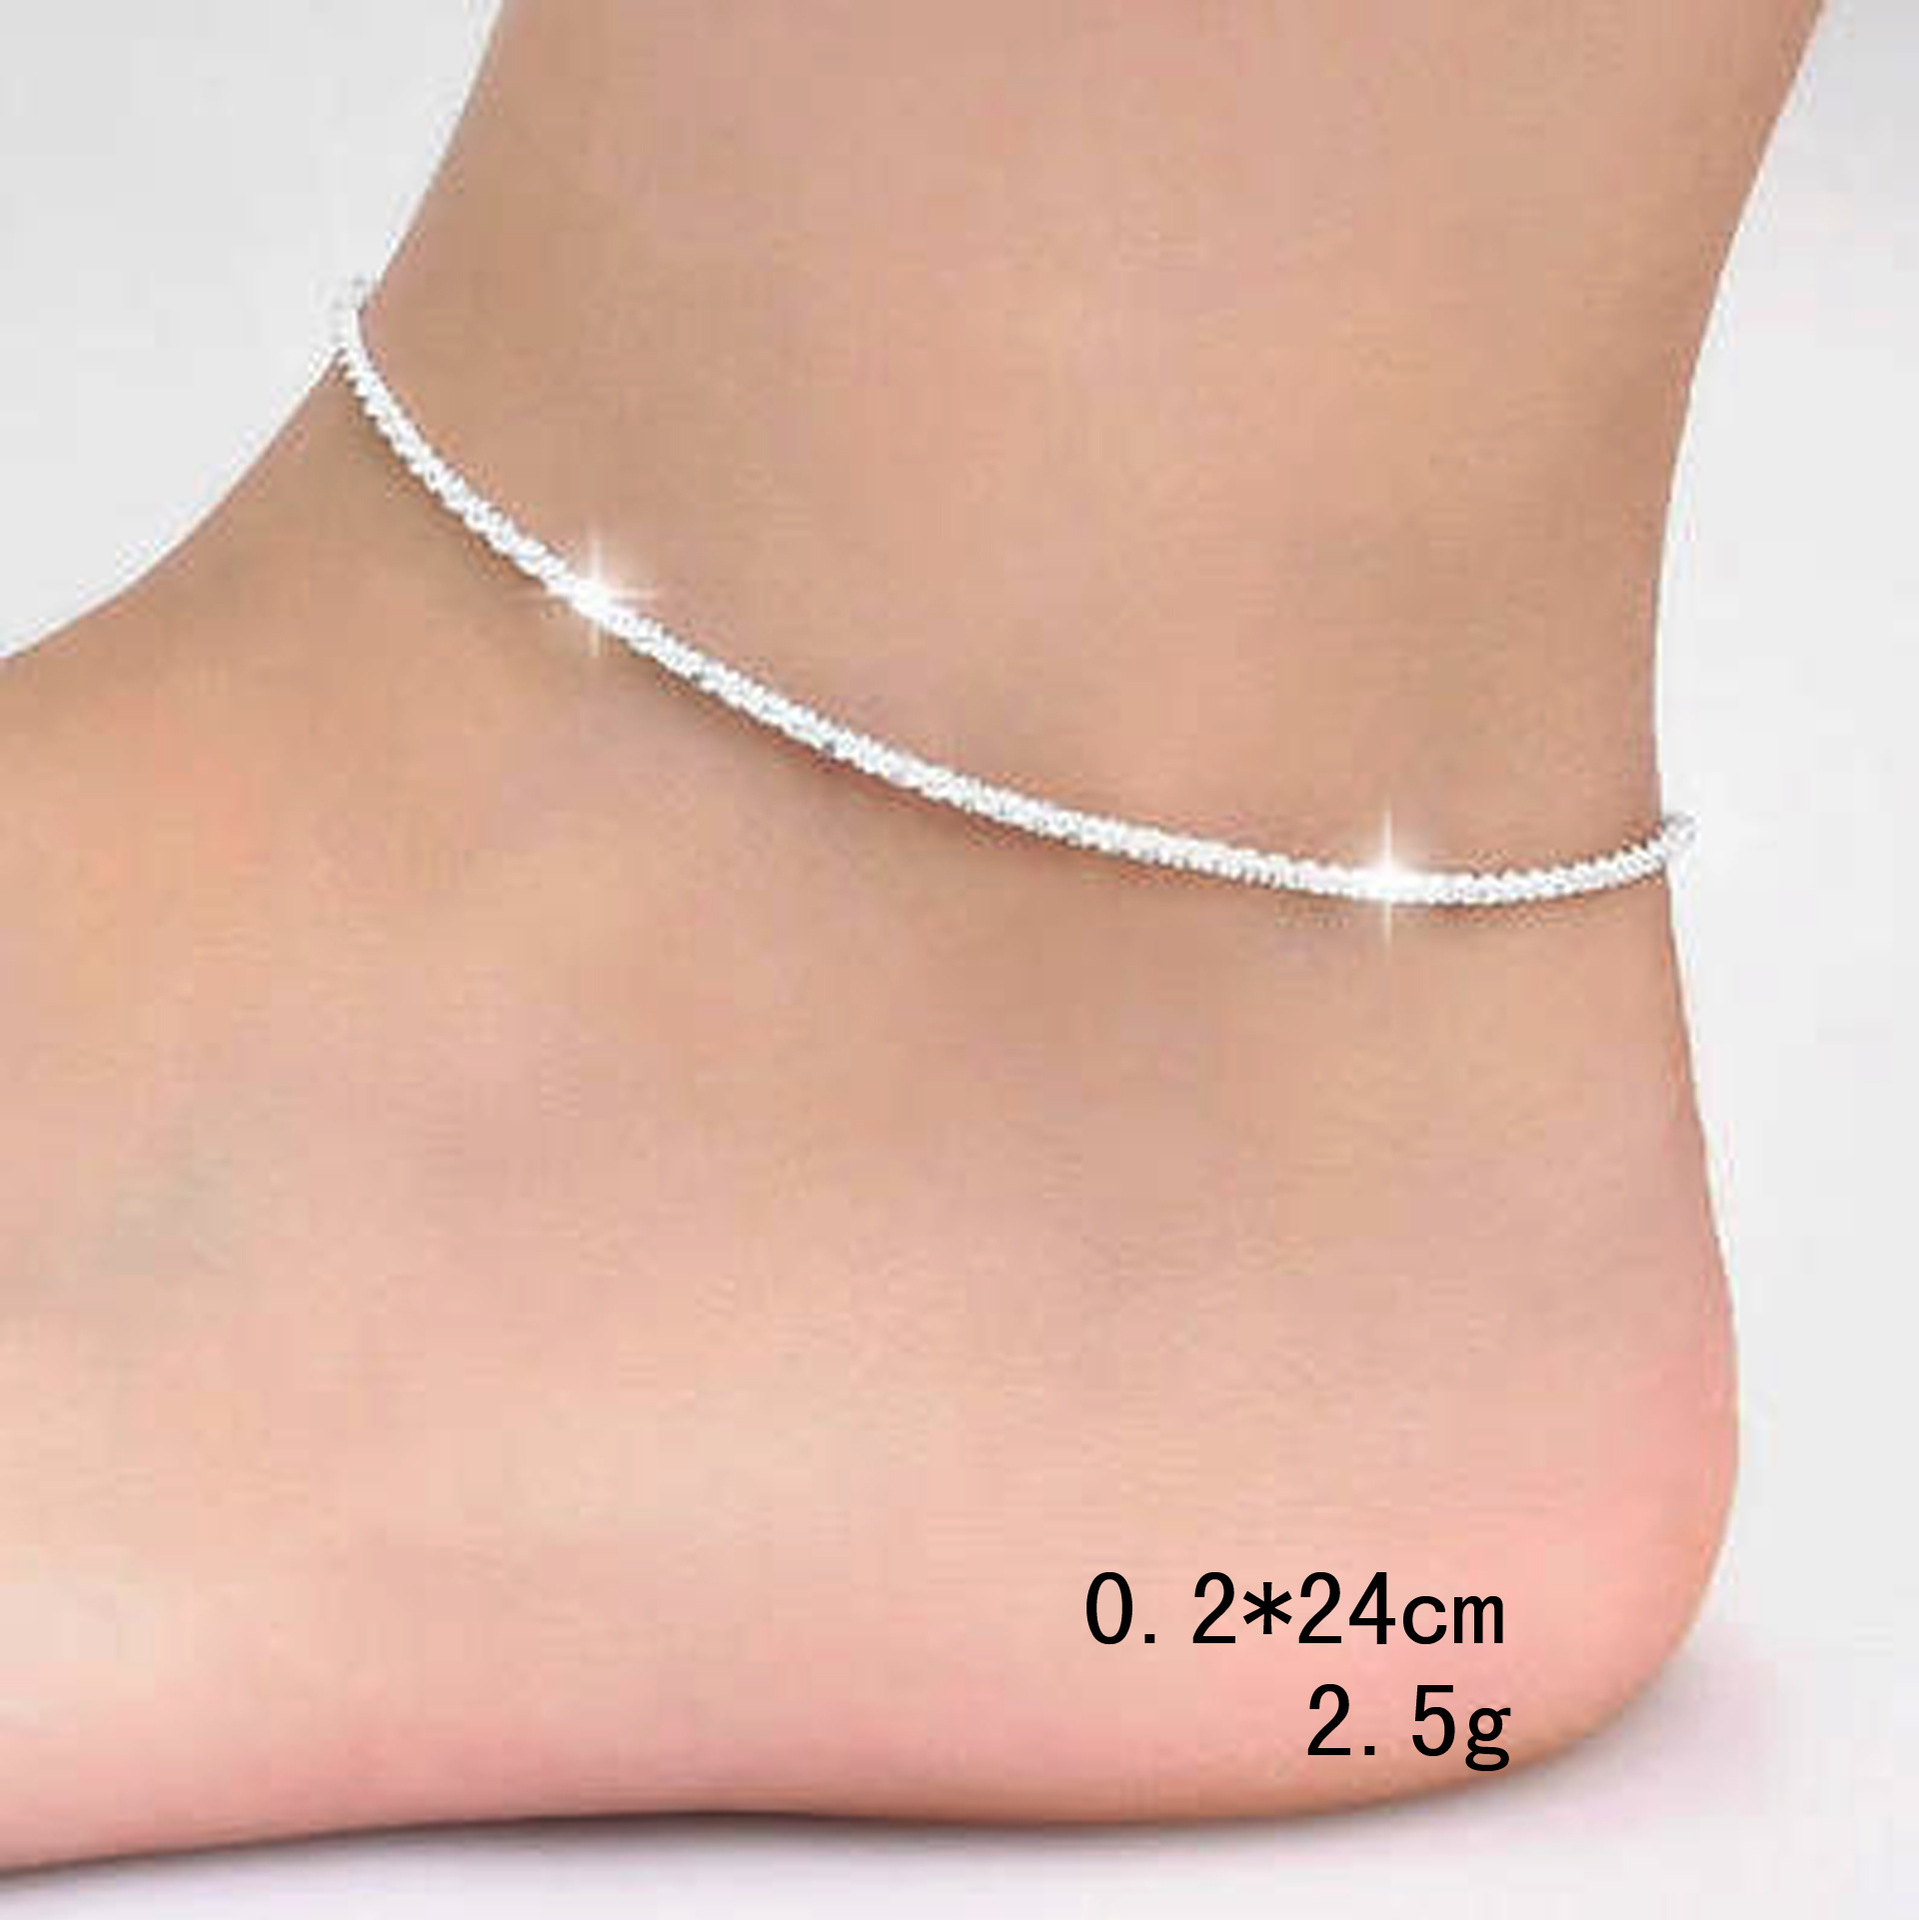 Thin 925 stamped silver plated Shiny Chains Anklet For Women Girls Friend Foot Jewelry Leg Bracelet Barefoot Tobillera de Prata 2